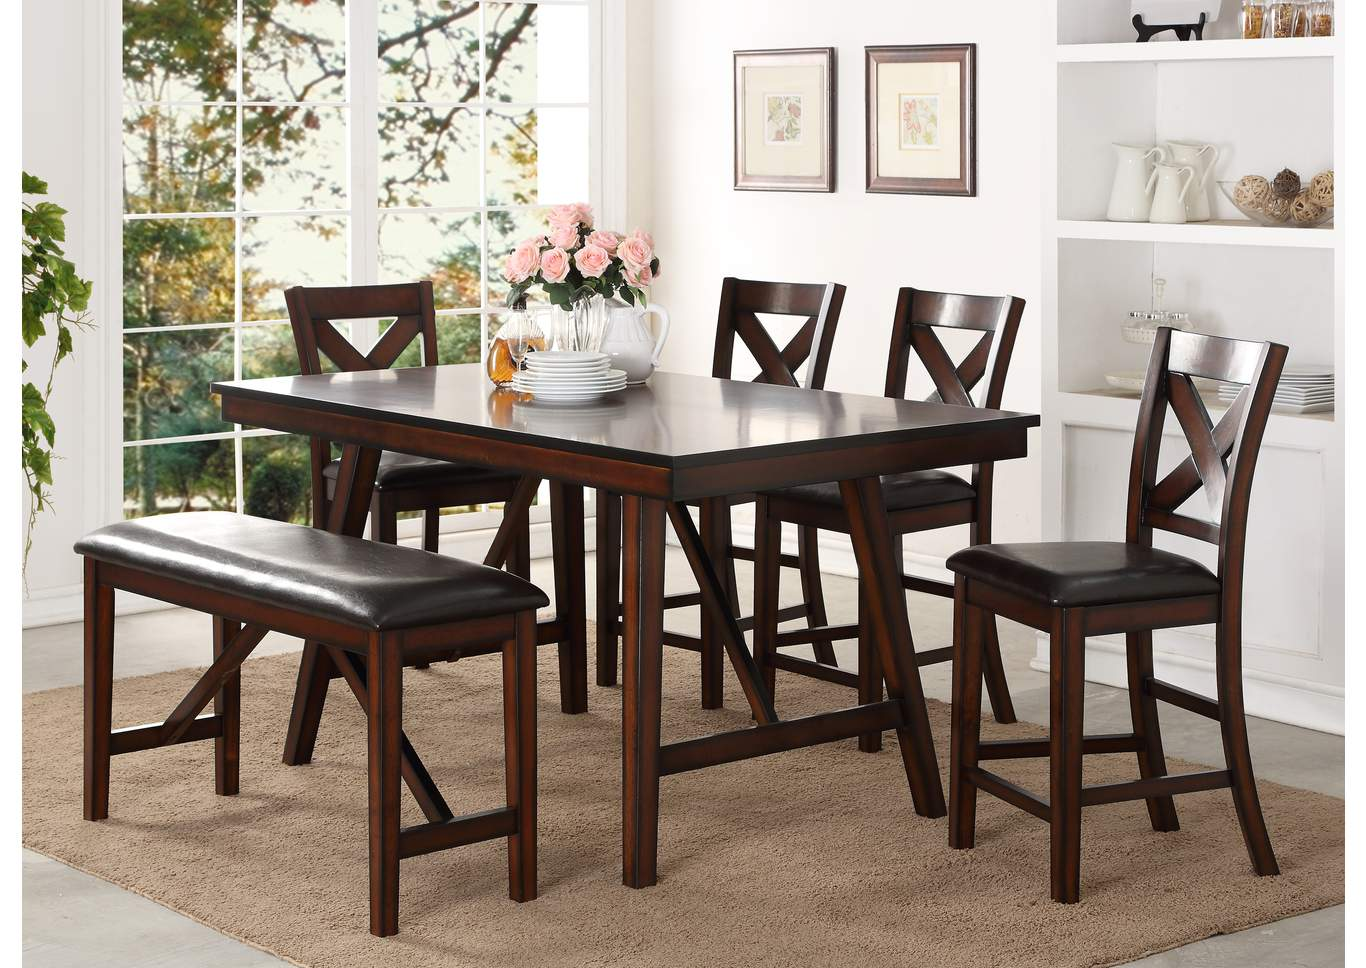 Virginia Furniture Co Vernon Counter Height Dining Table W 4 Side